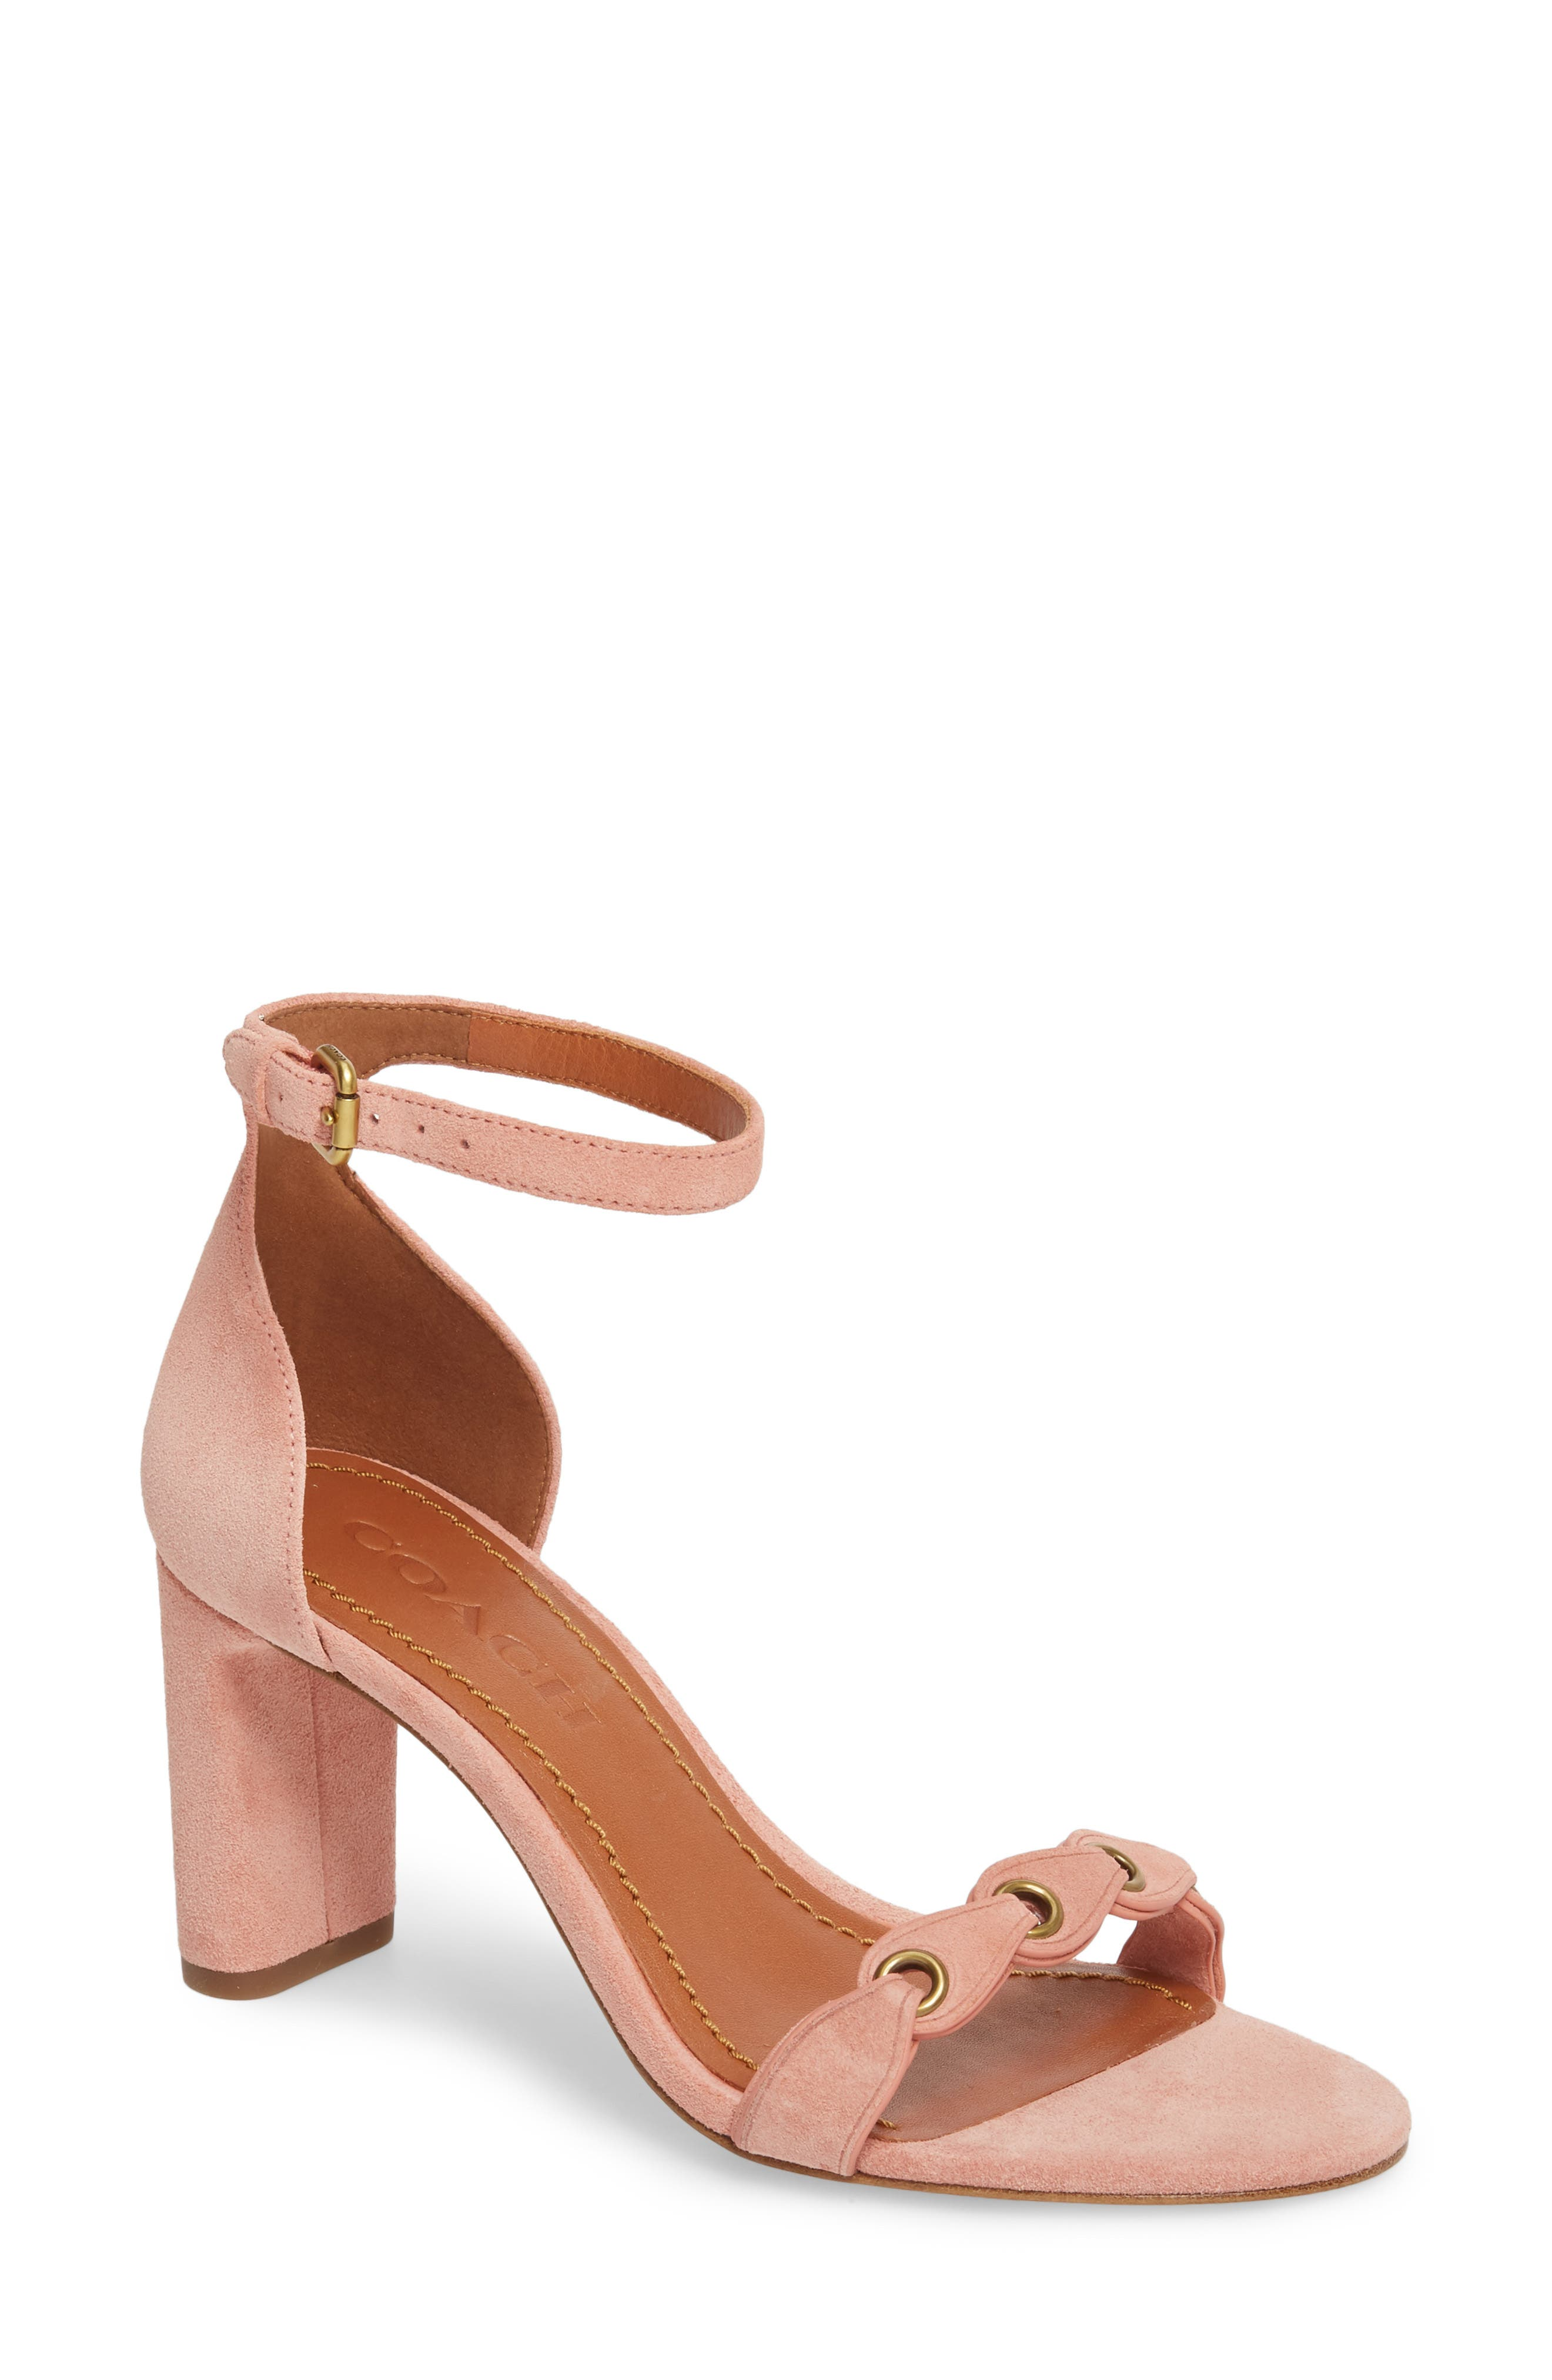 Link Strap Sandal,                             Main thumbnail 1, color,                             Peony Leather